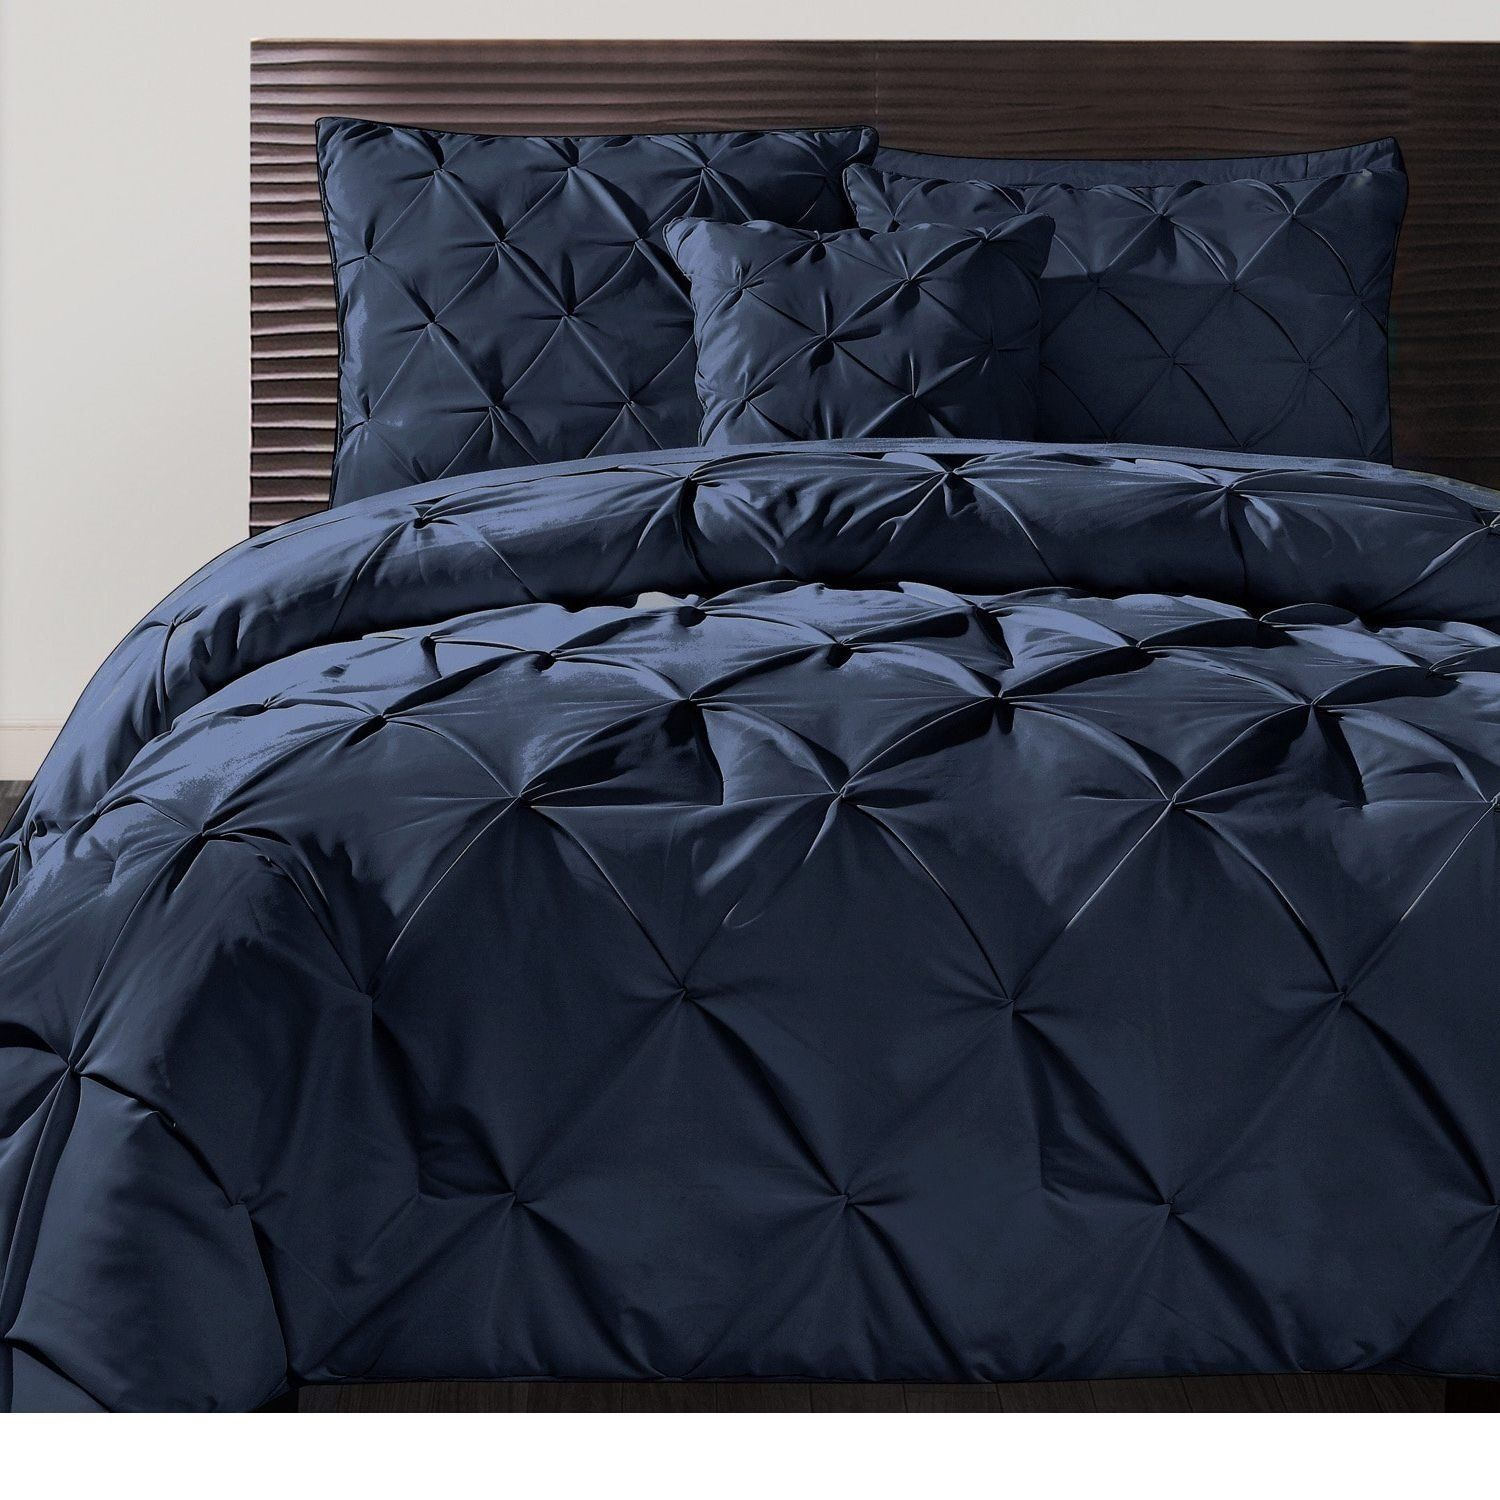 Navy Dark Blue Pinch Pleated Duvet Cover King Set Plush Pinched